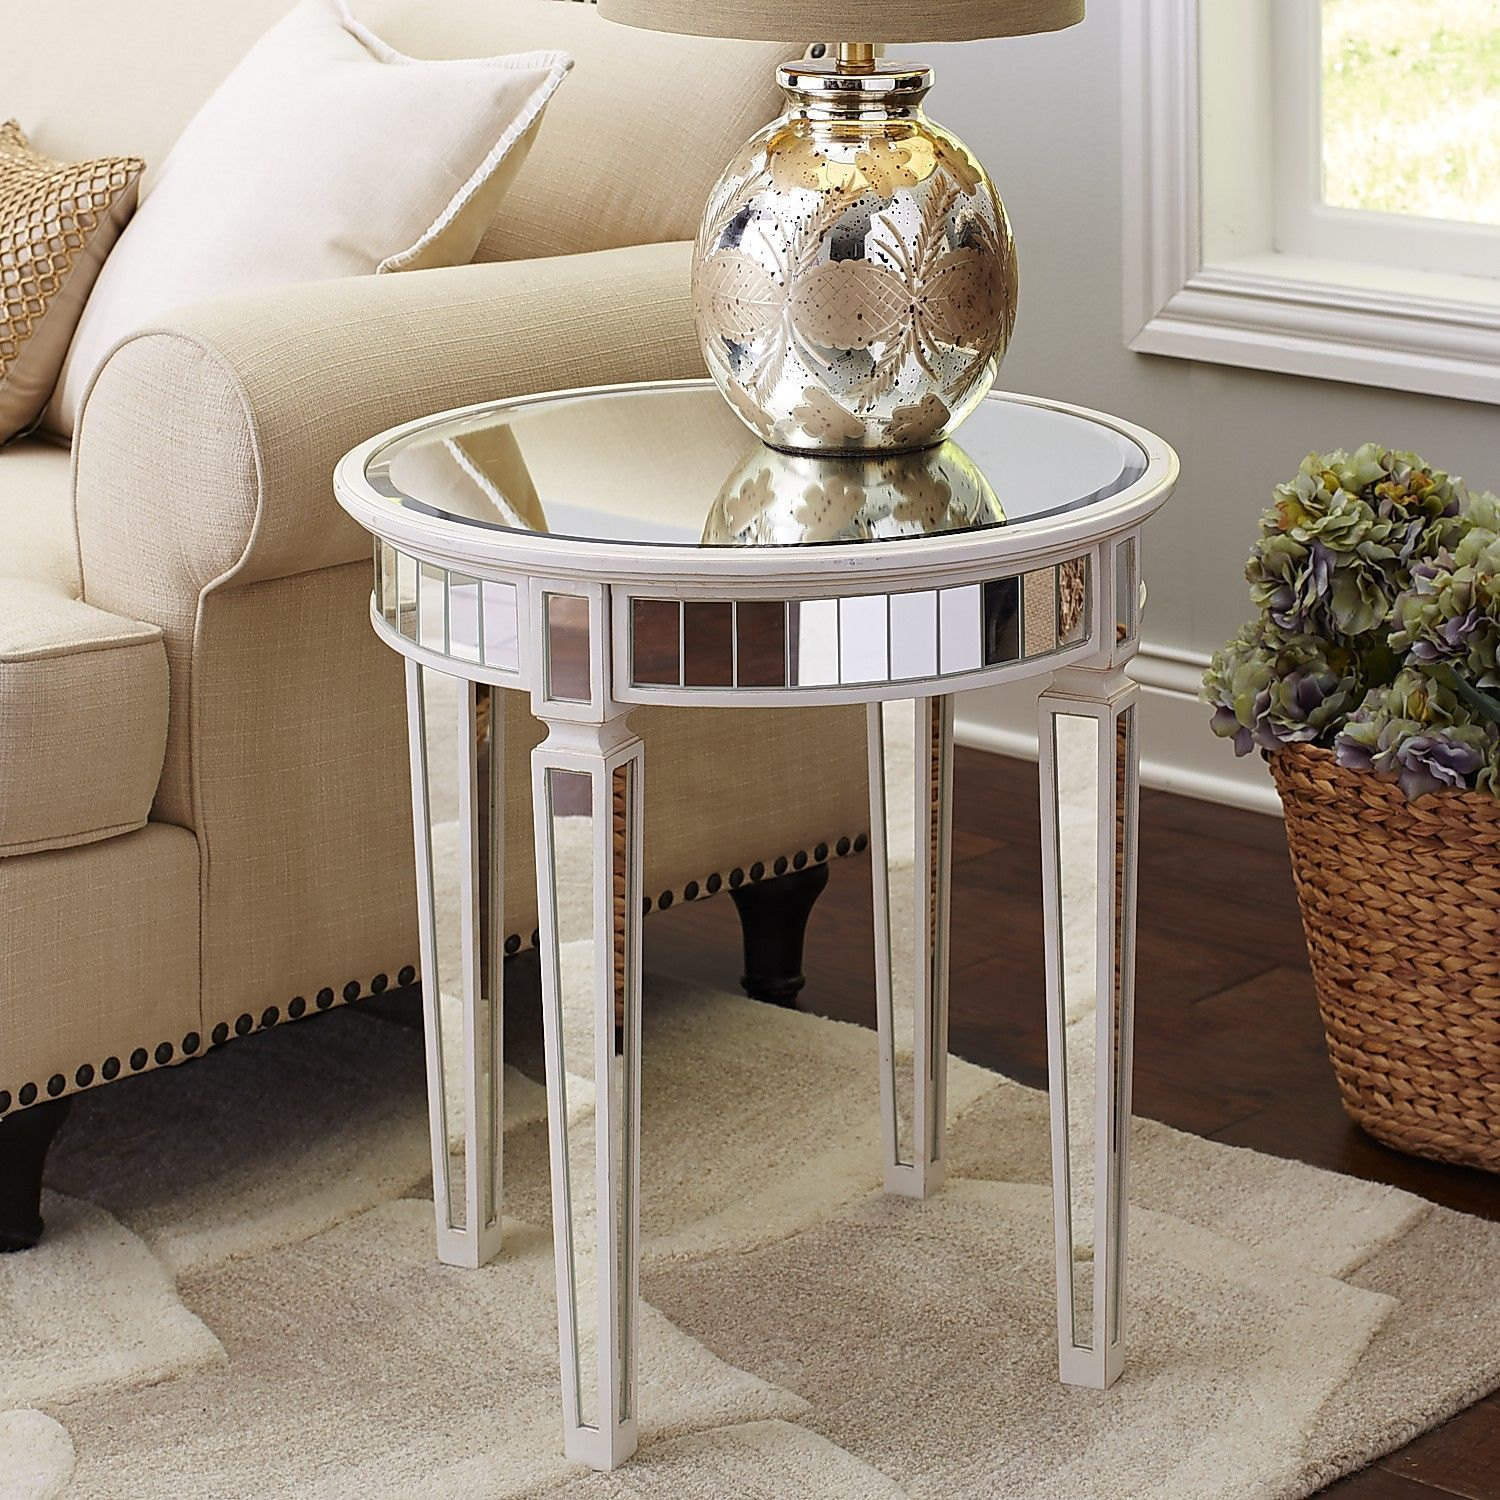 Best Merriweather End Table Antique White Pier 1 Imports Table End Tables Living Room Update 400 x 300